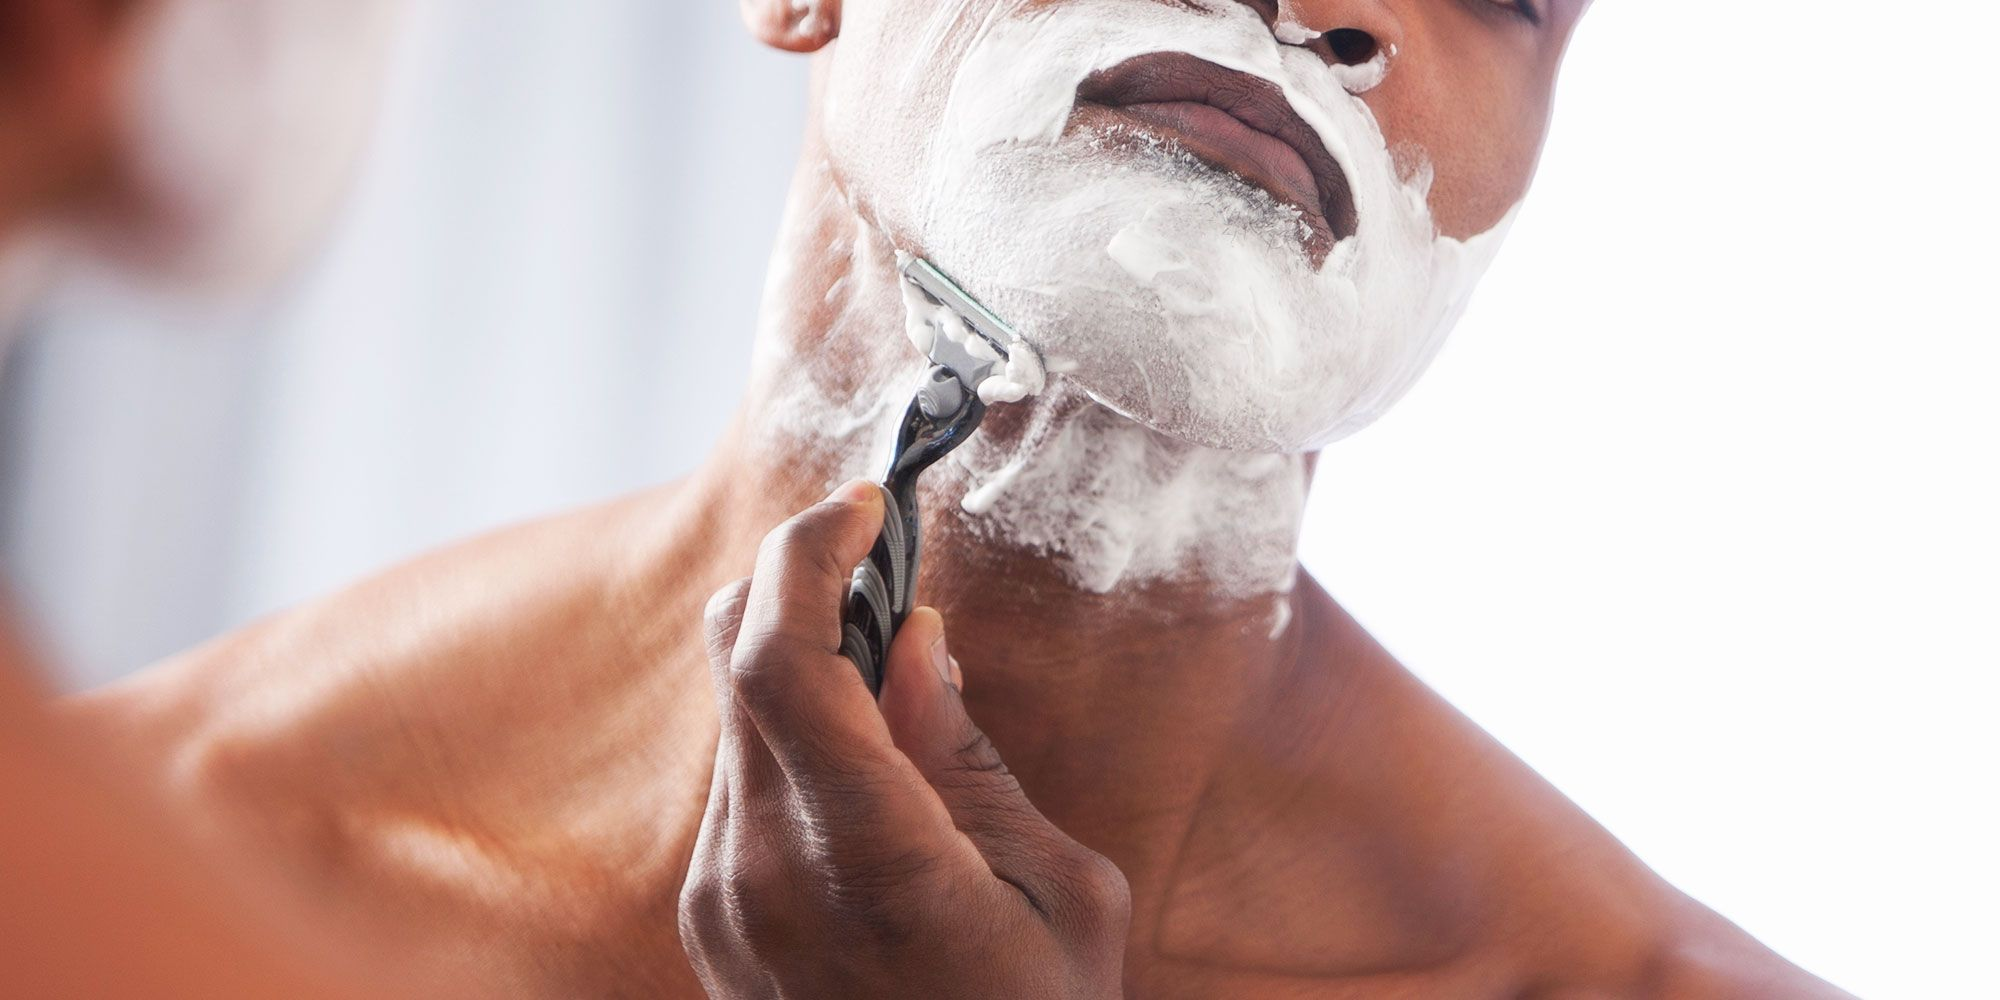 The 6 Best Razors for Men to Get a Perfect Shave